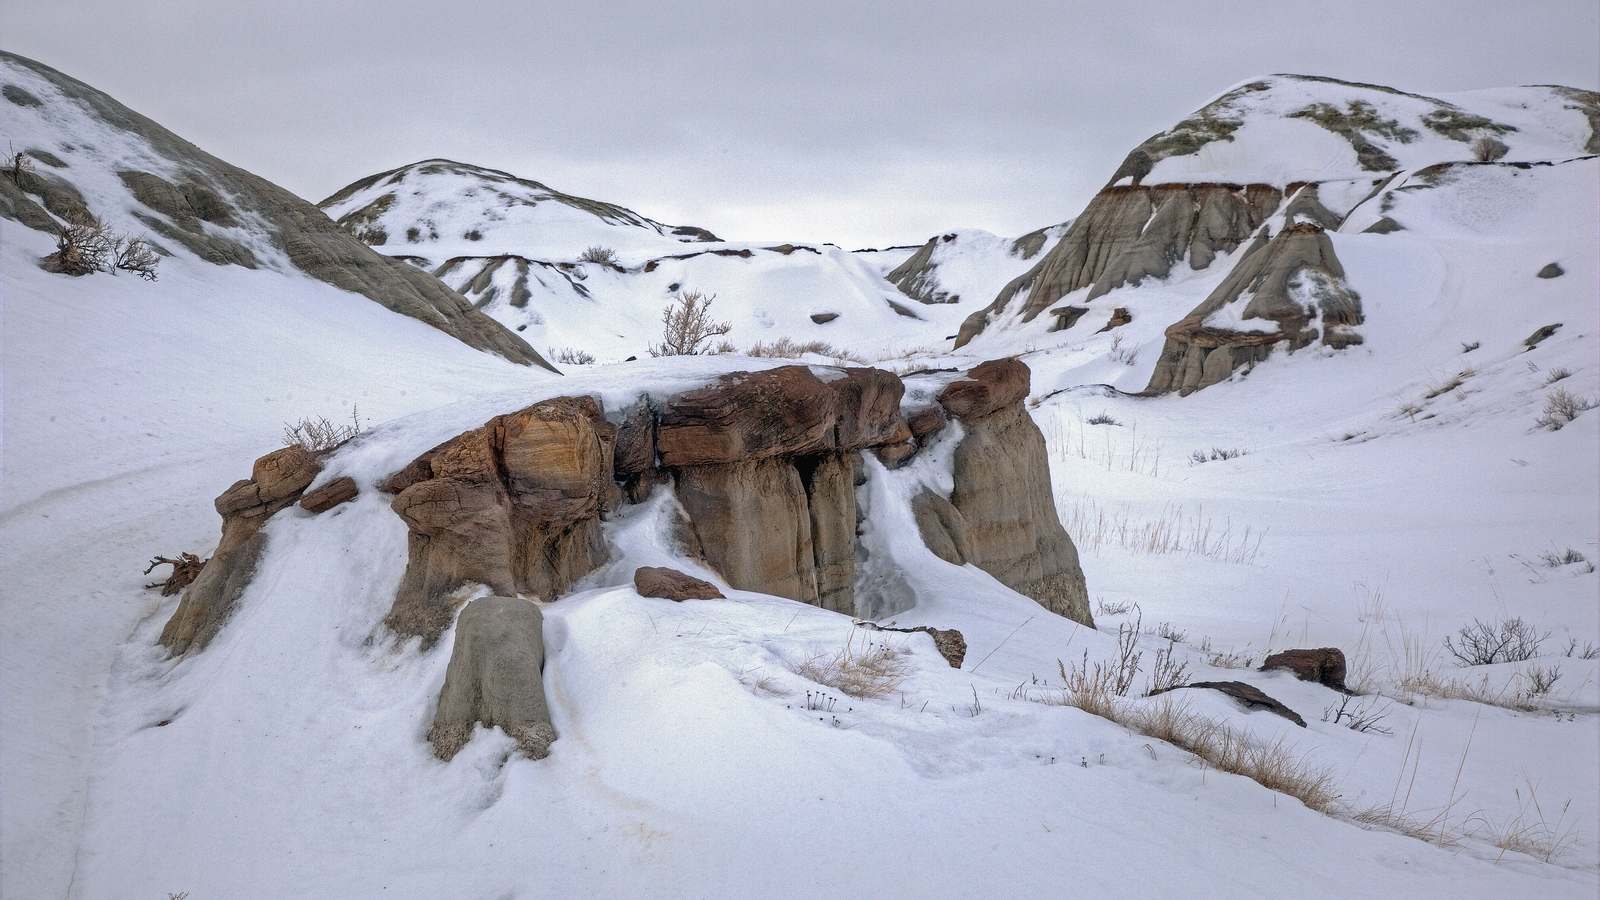 Badlands Park, near Brooks, Alberta in the Winter